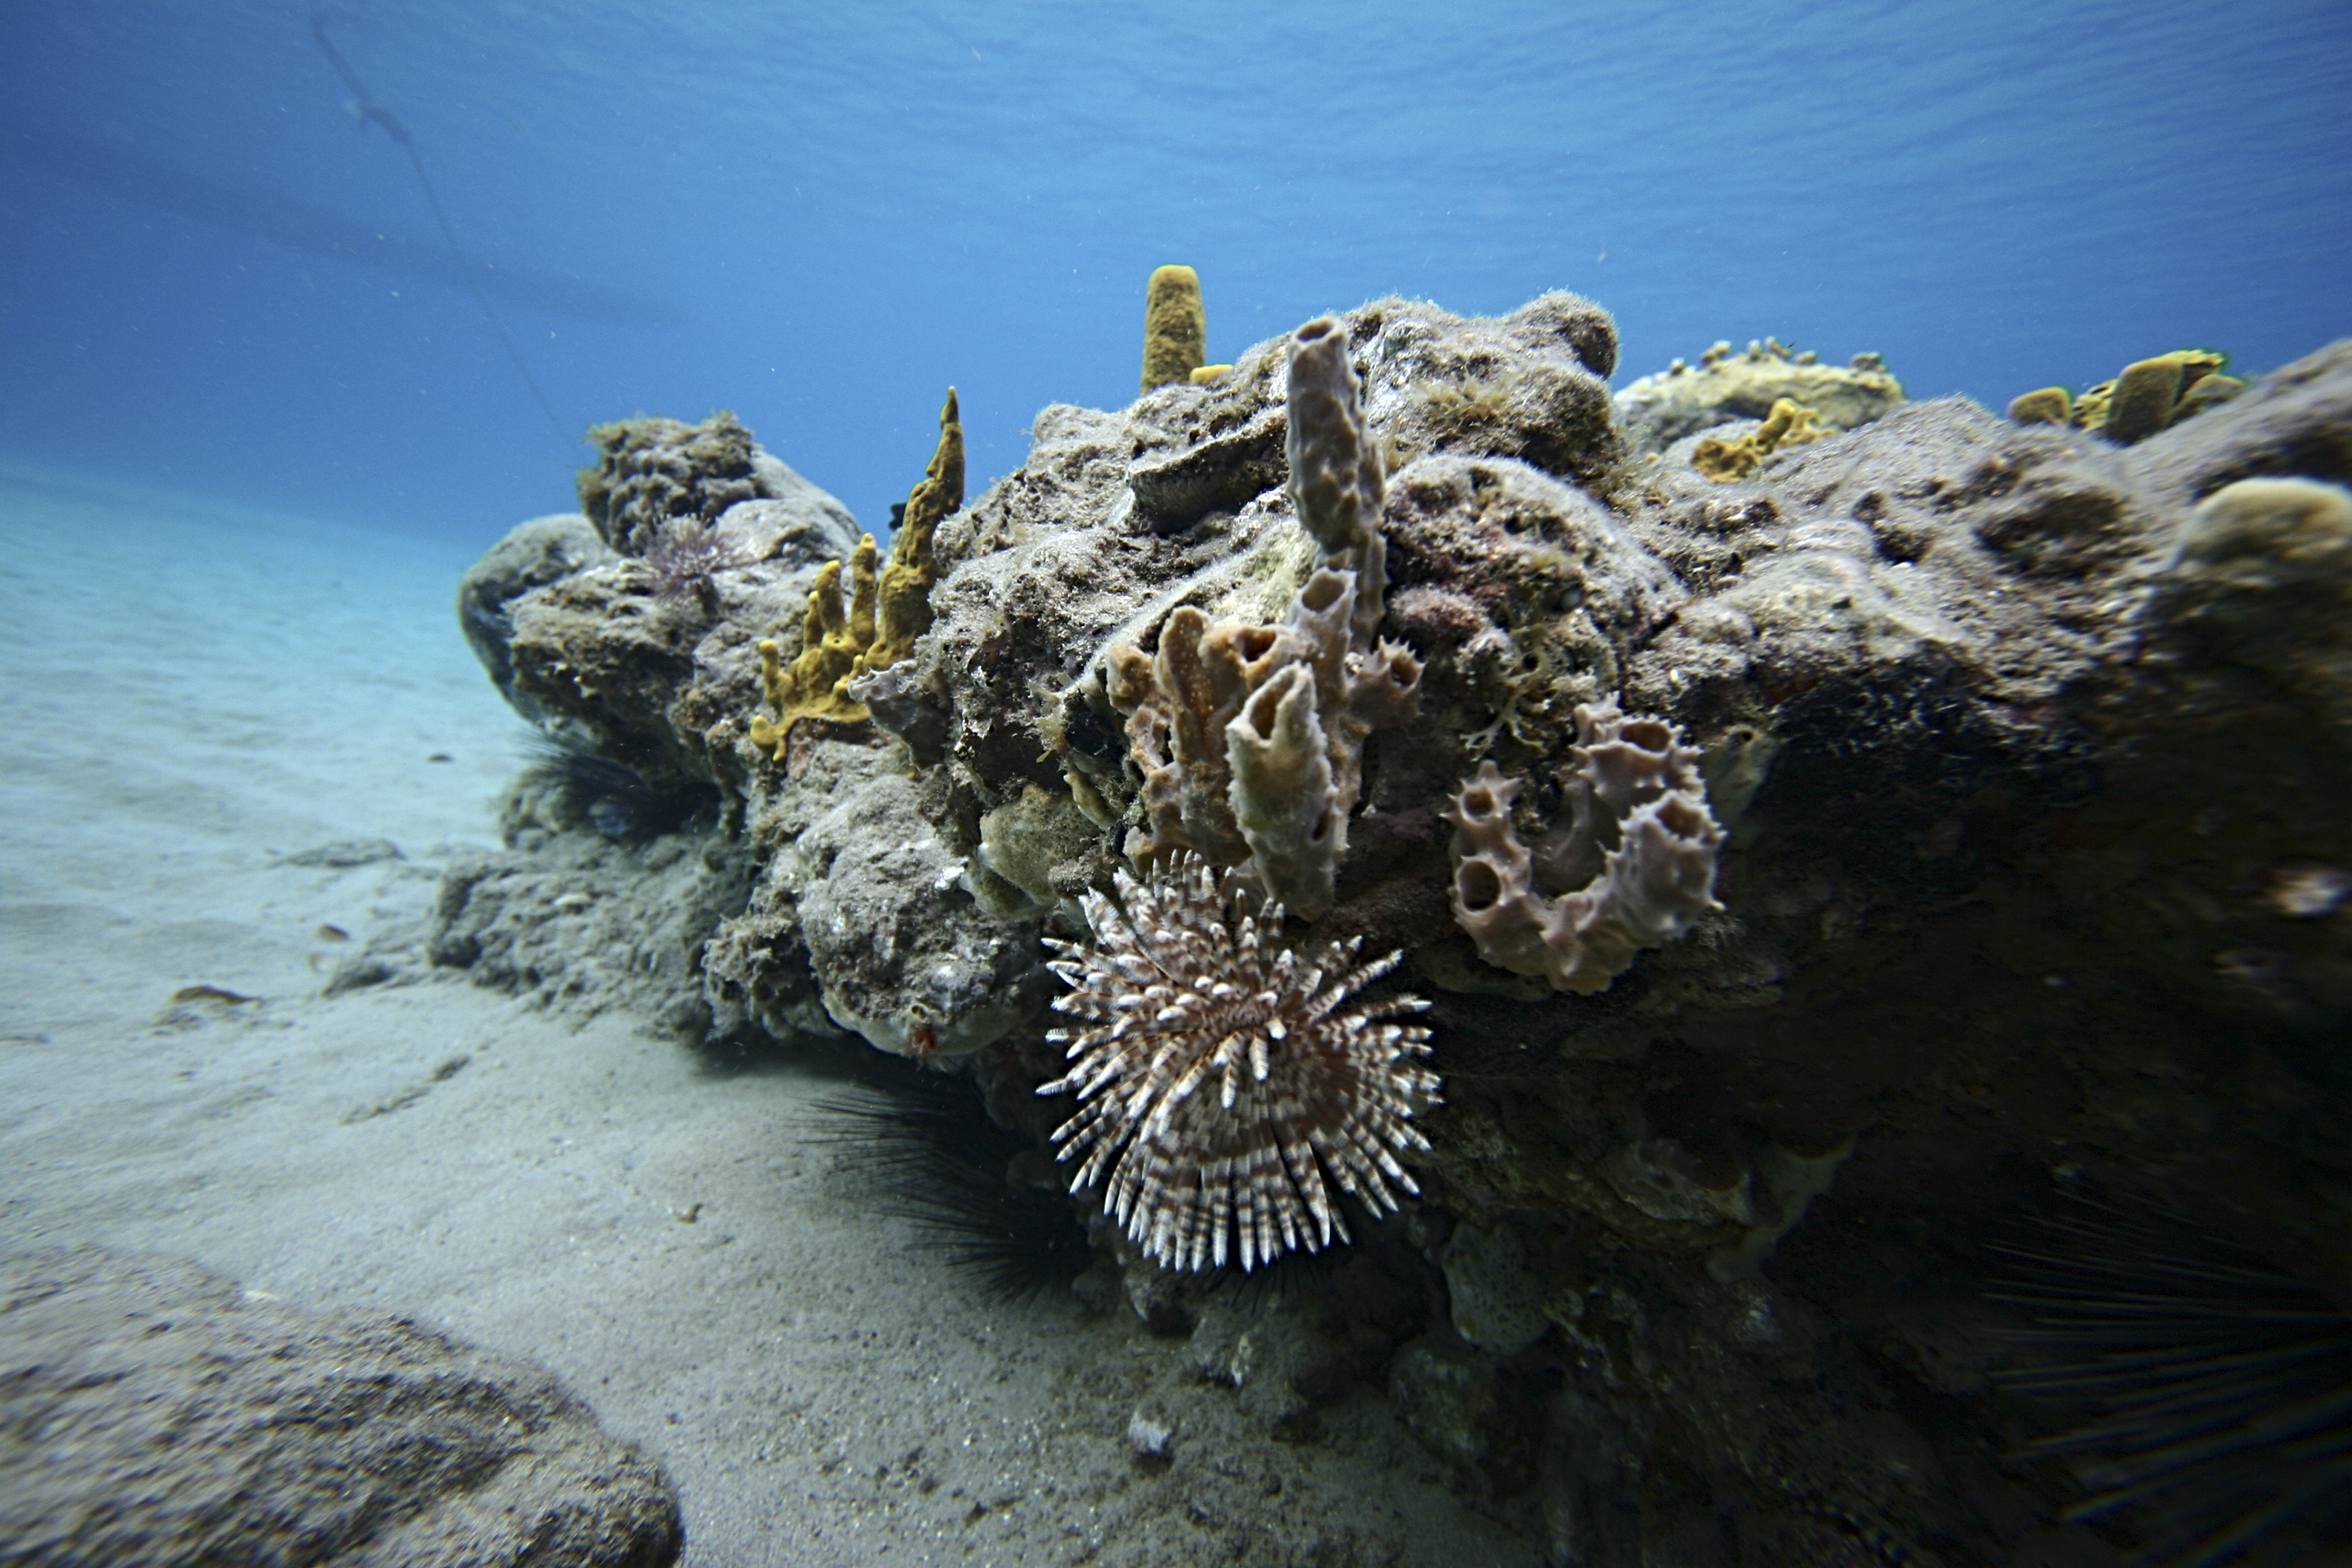 Martinique's reefs attract divers